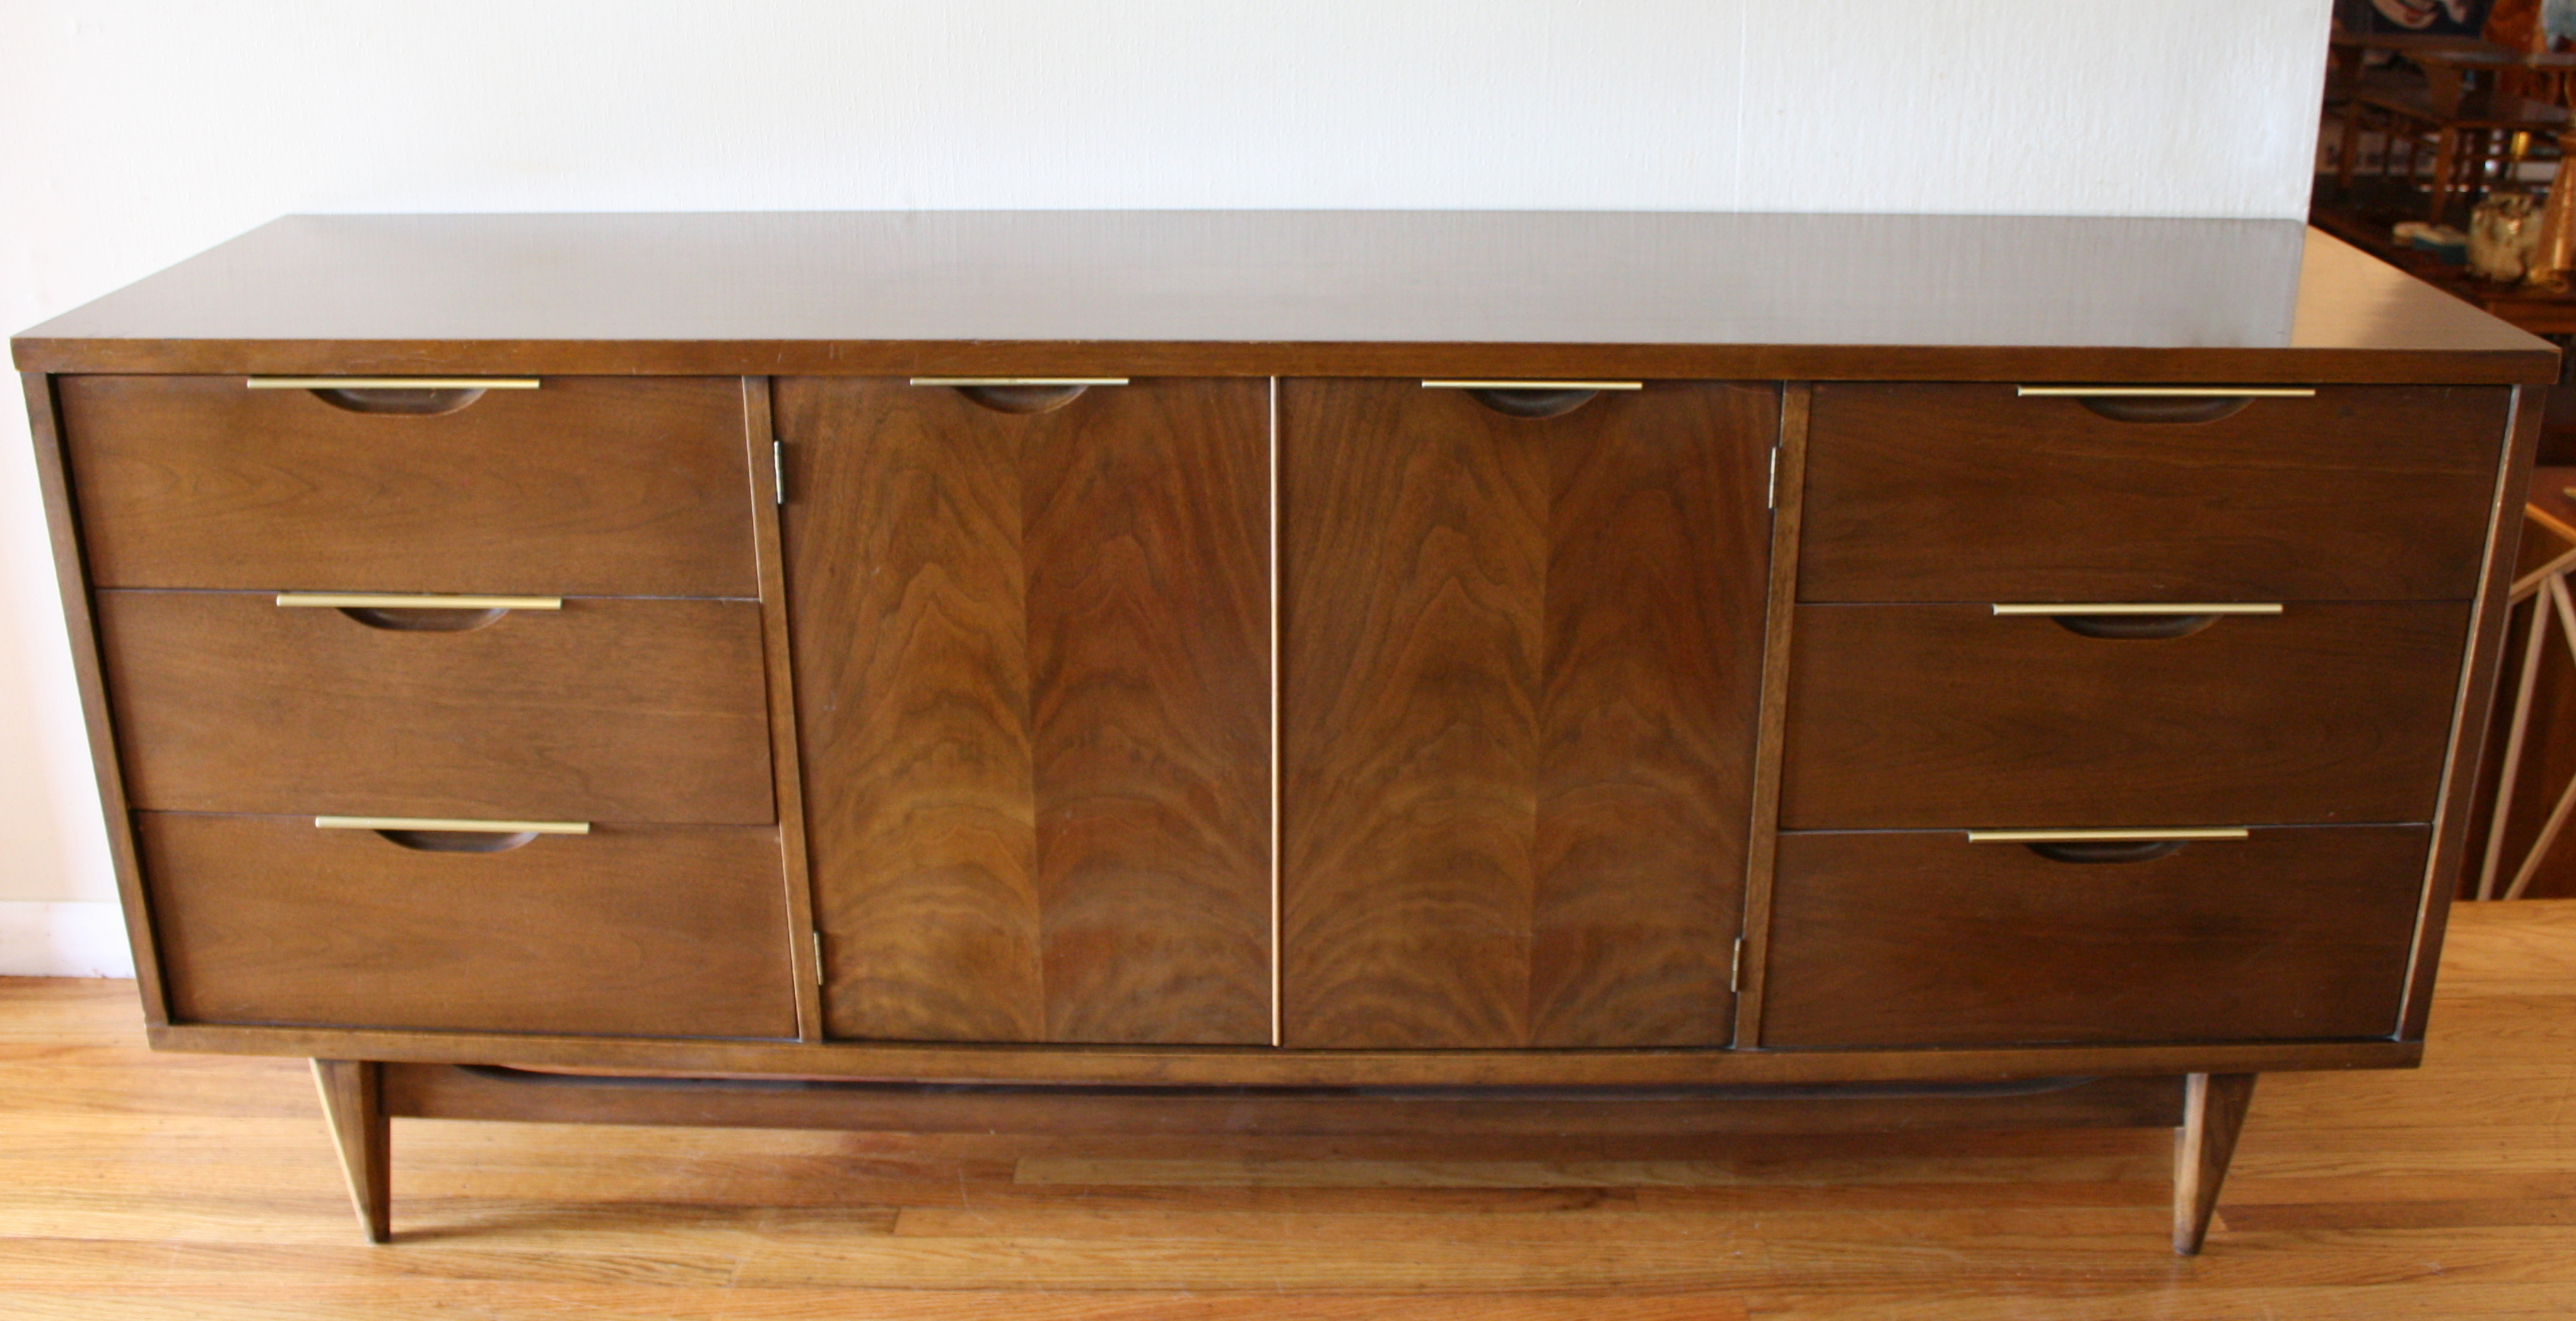 american furniture chairs yellow grey chair mid century modern credenza low dressers | picked vintage